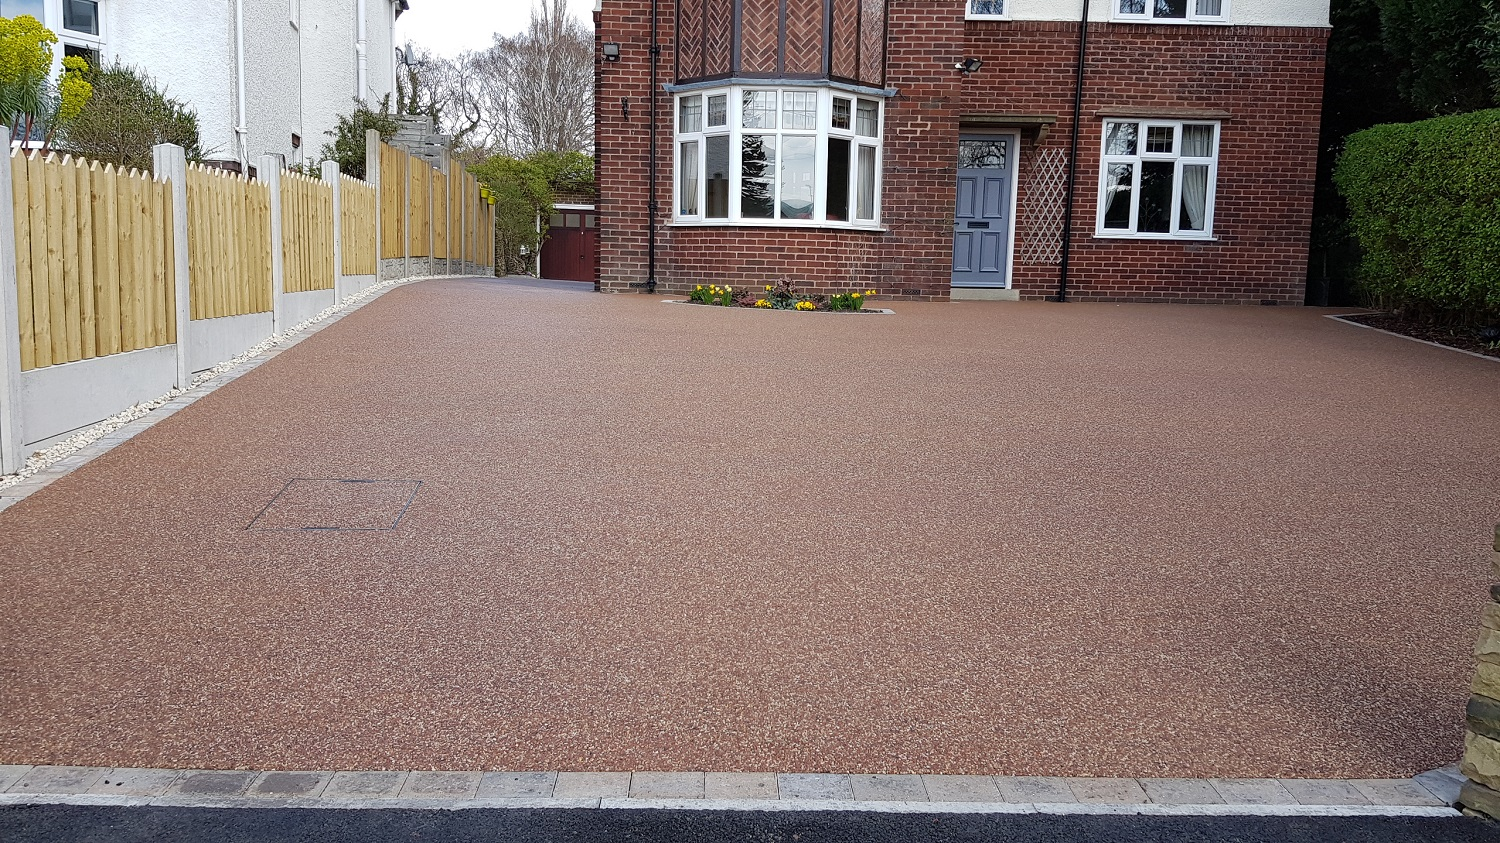 R16 - Chilli Chocolate Mix (2)  Resin Bound Driveway Surfacing at Brookside  in Chesterfield with Bl